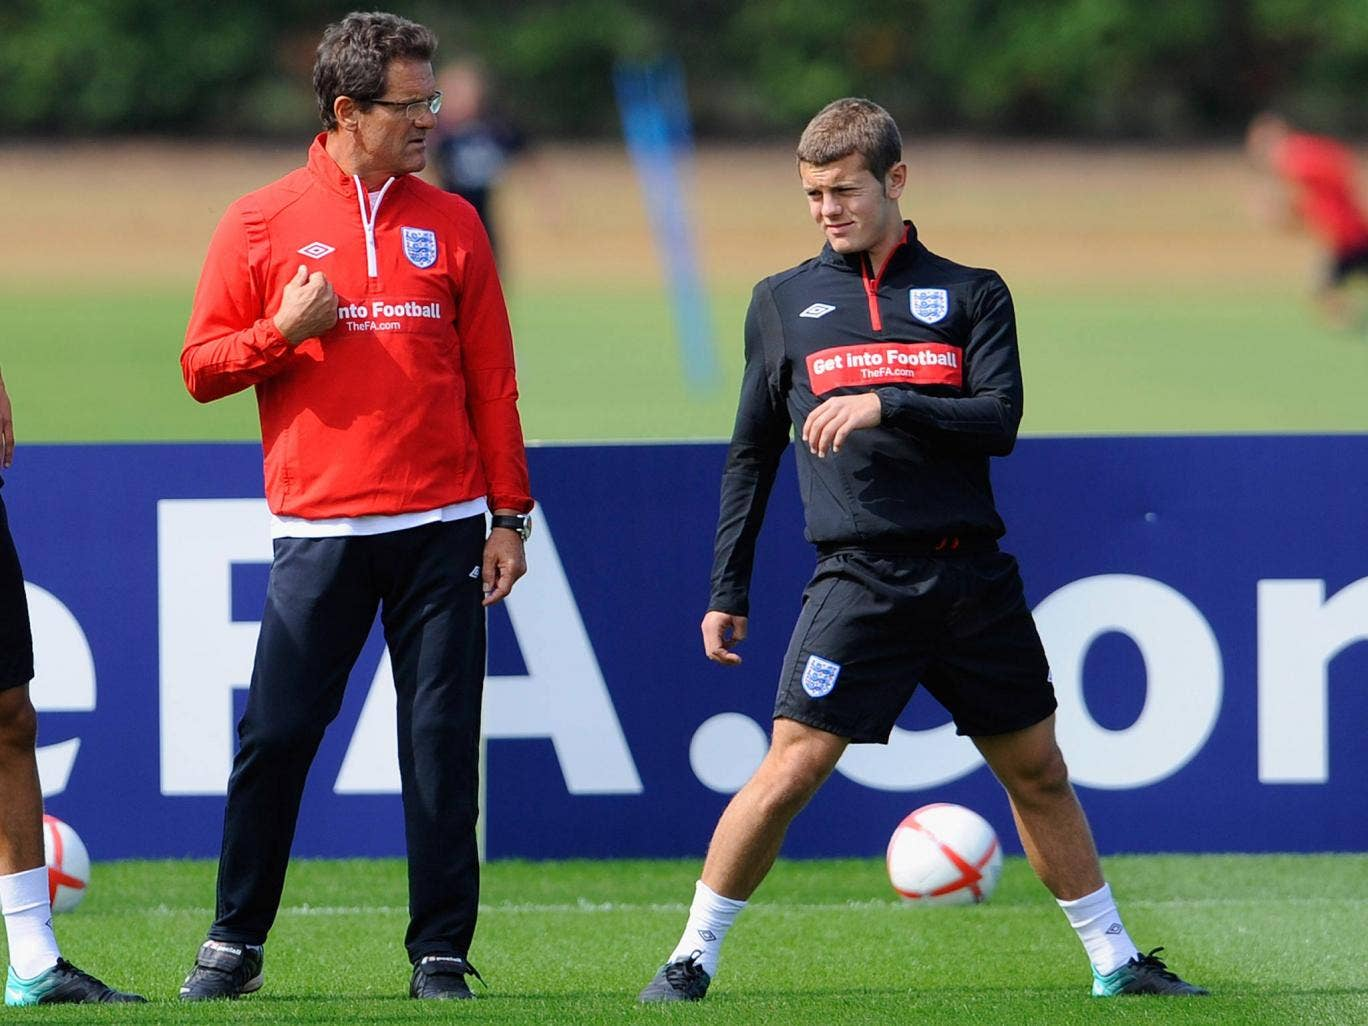 Jack Wilshere pictured training under the gaze of Fabio Capello in 2010